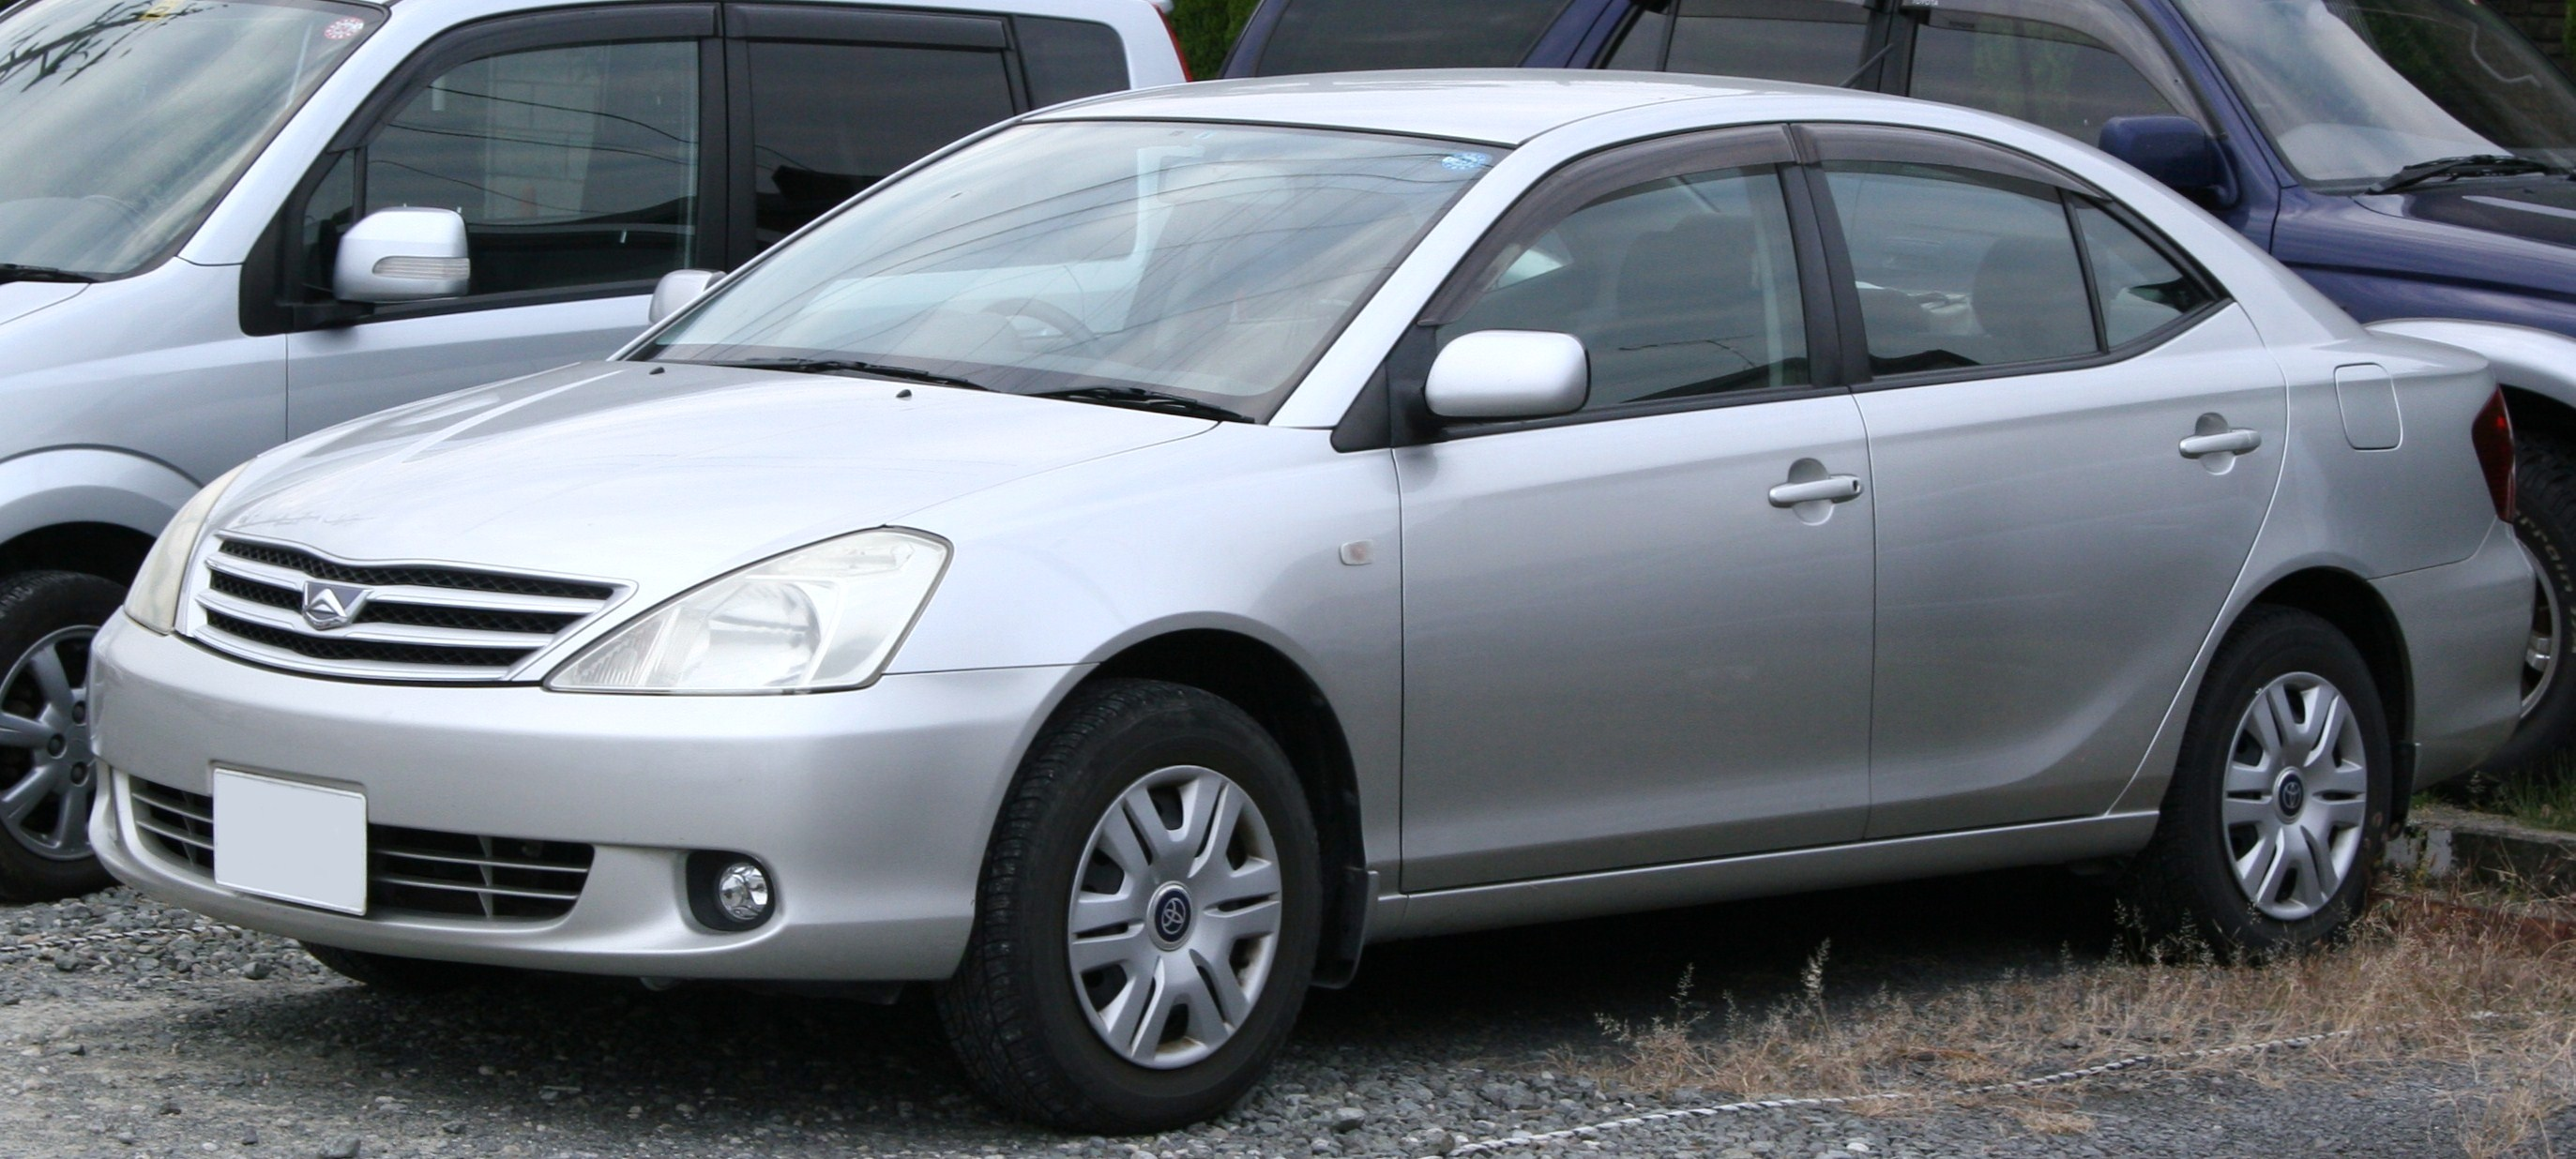 Toyota Allion - Wikipedia